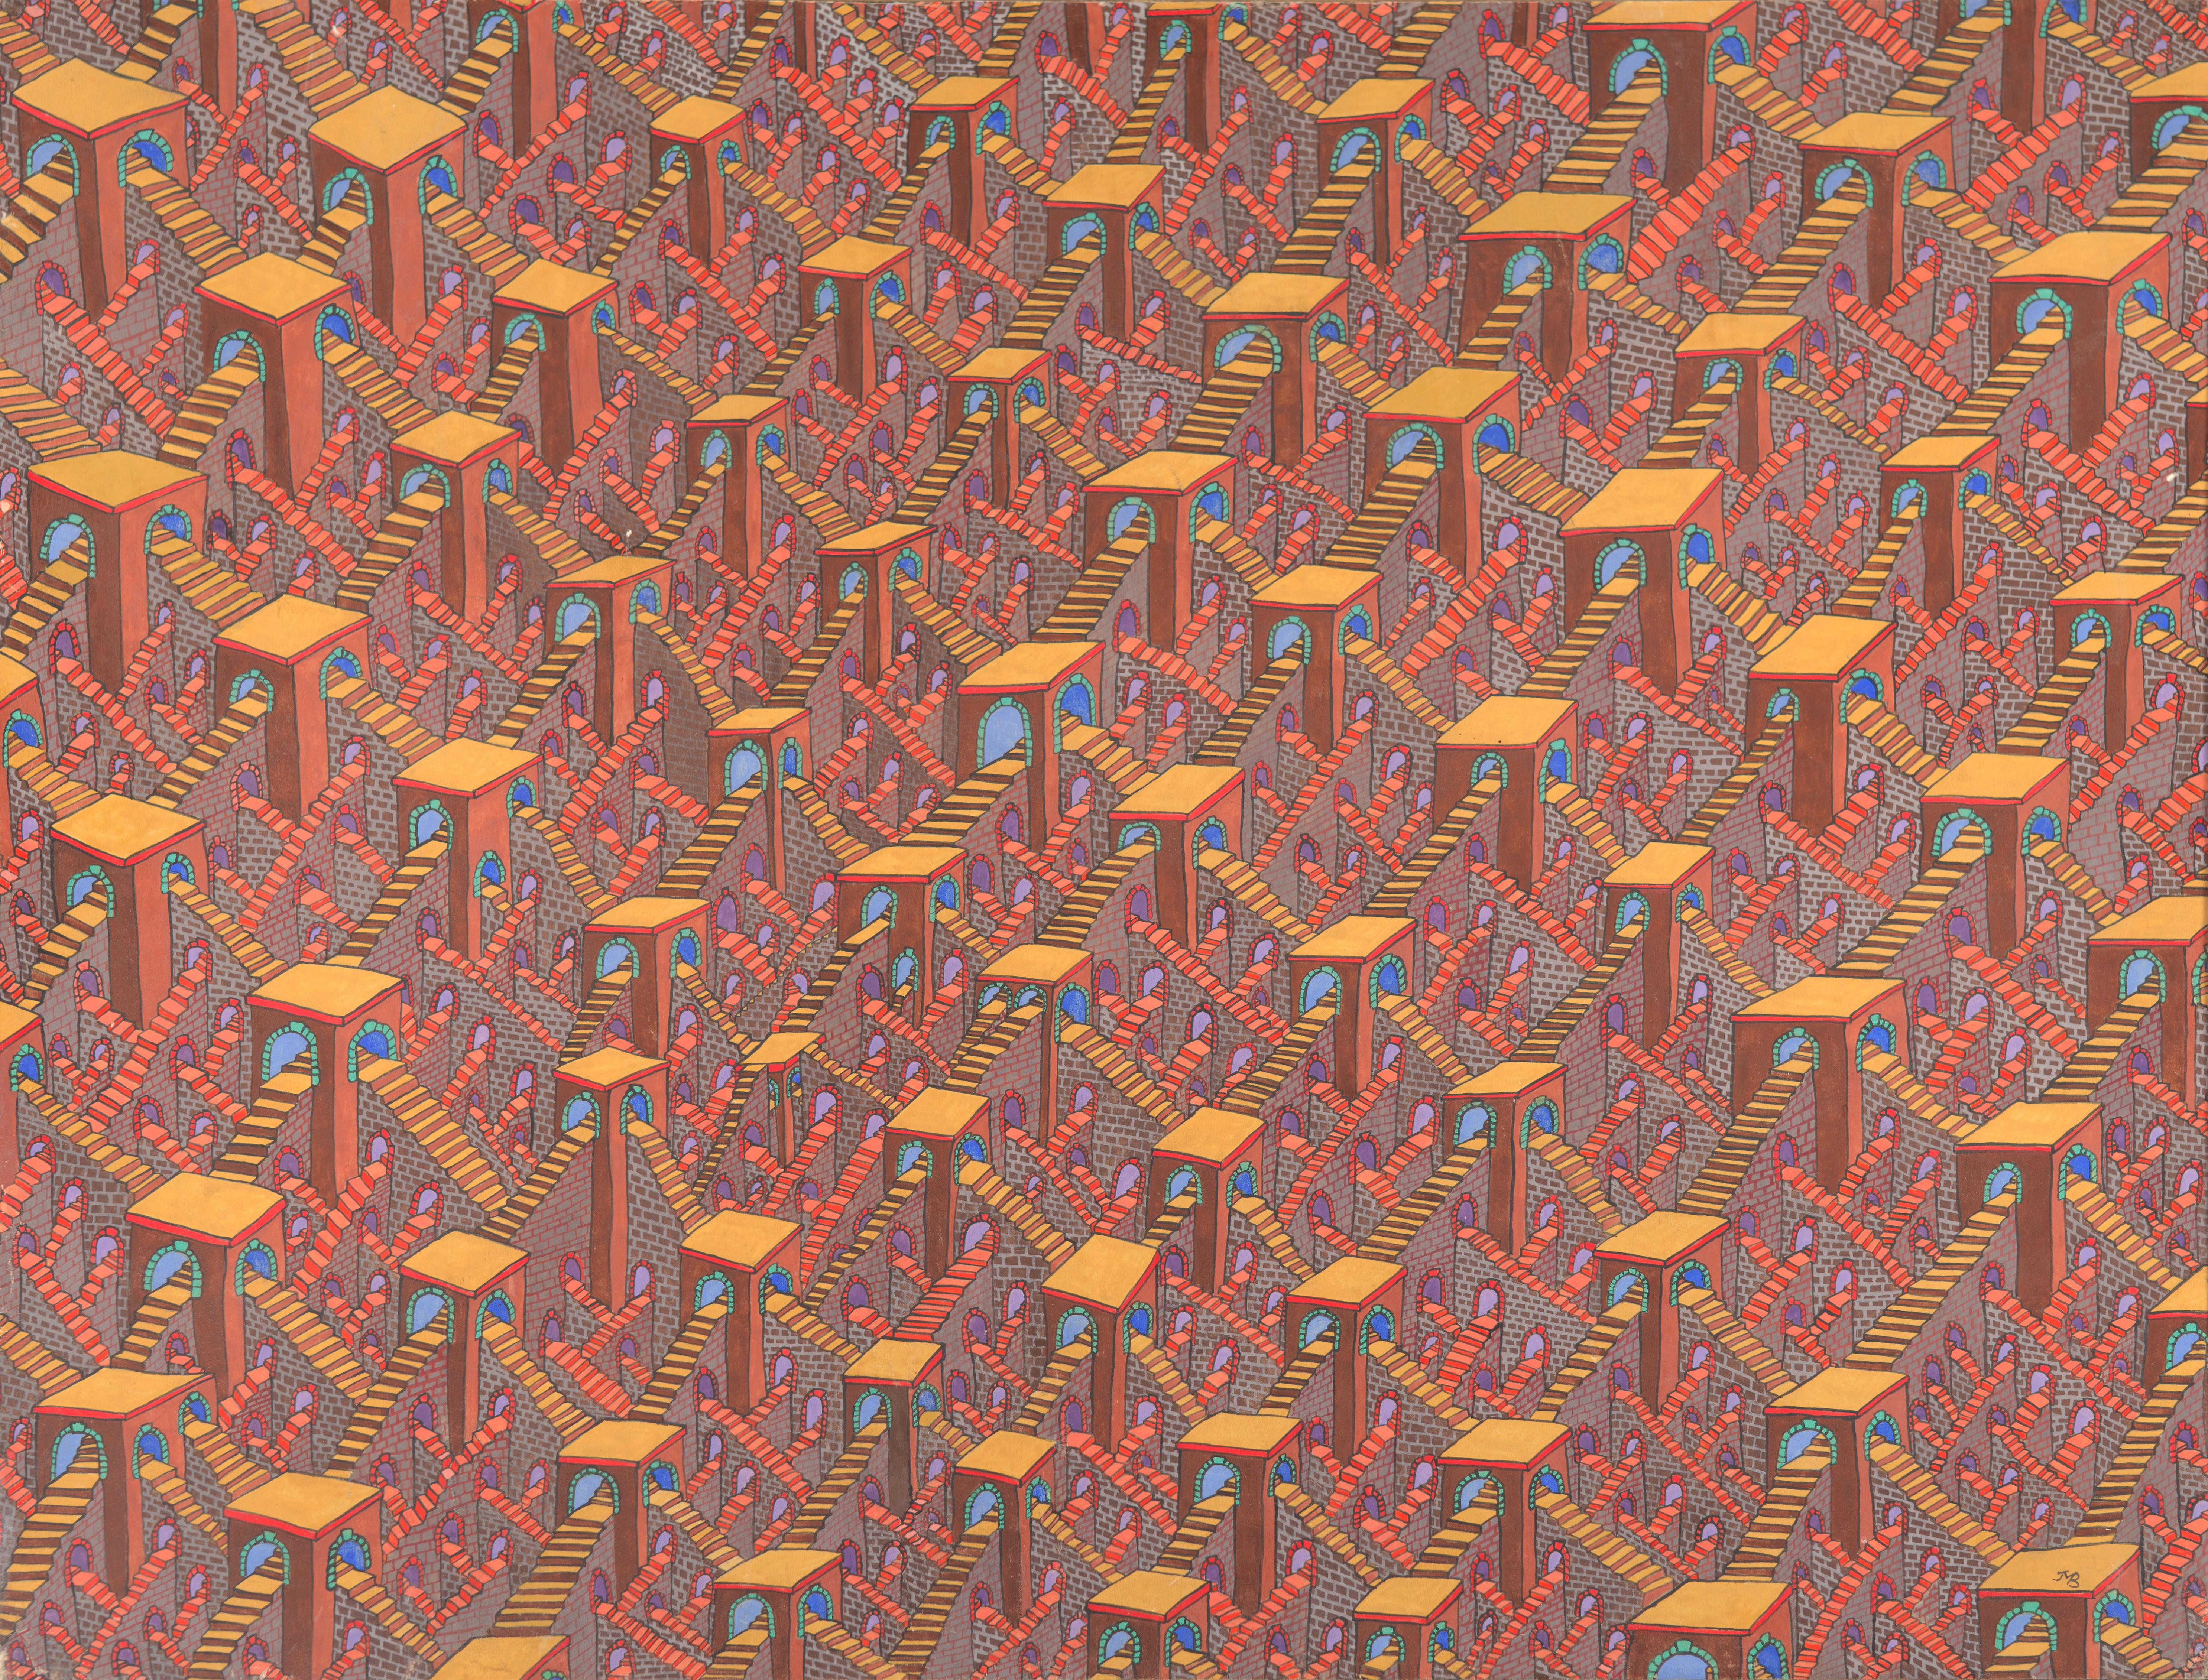 Labyrinths Network of Countless Red Orange Stairs w/ Blue Archs Gouache Painting